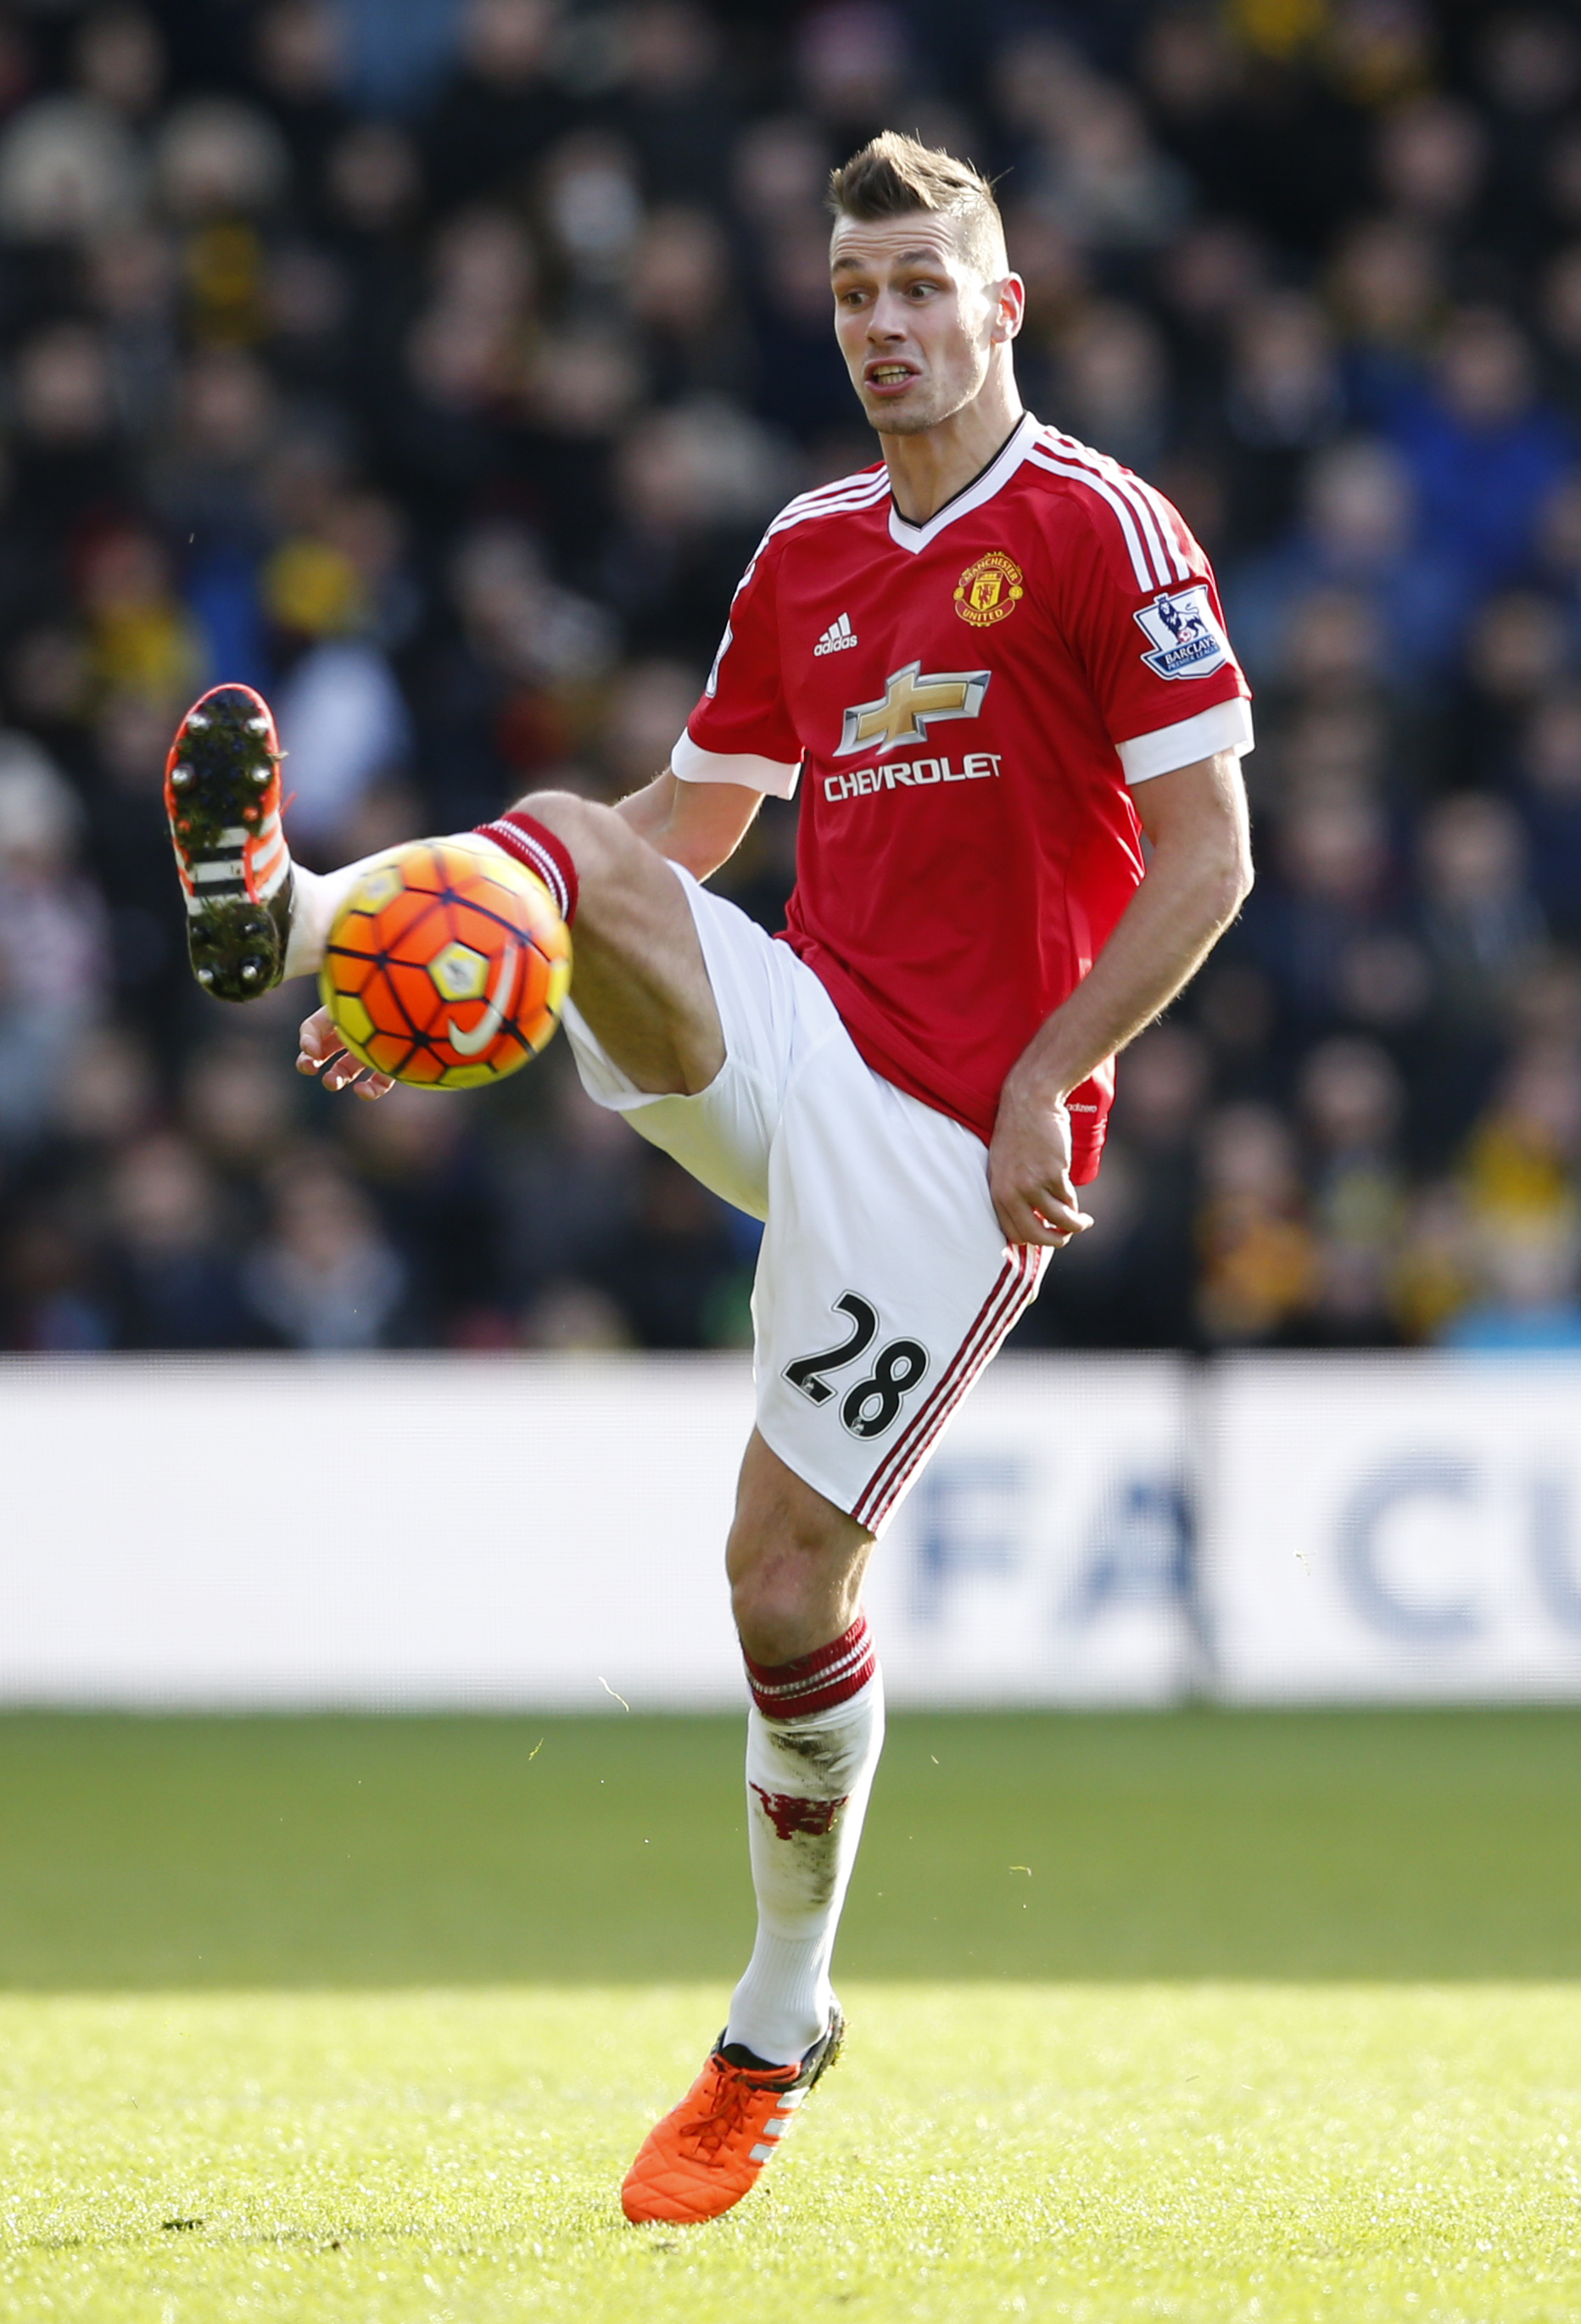 Morgan Schneiderlin in action during Barclays Premier League game against Watfford at Old Trafford on November 21, 2015. Photo: Reuters